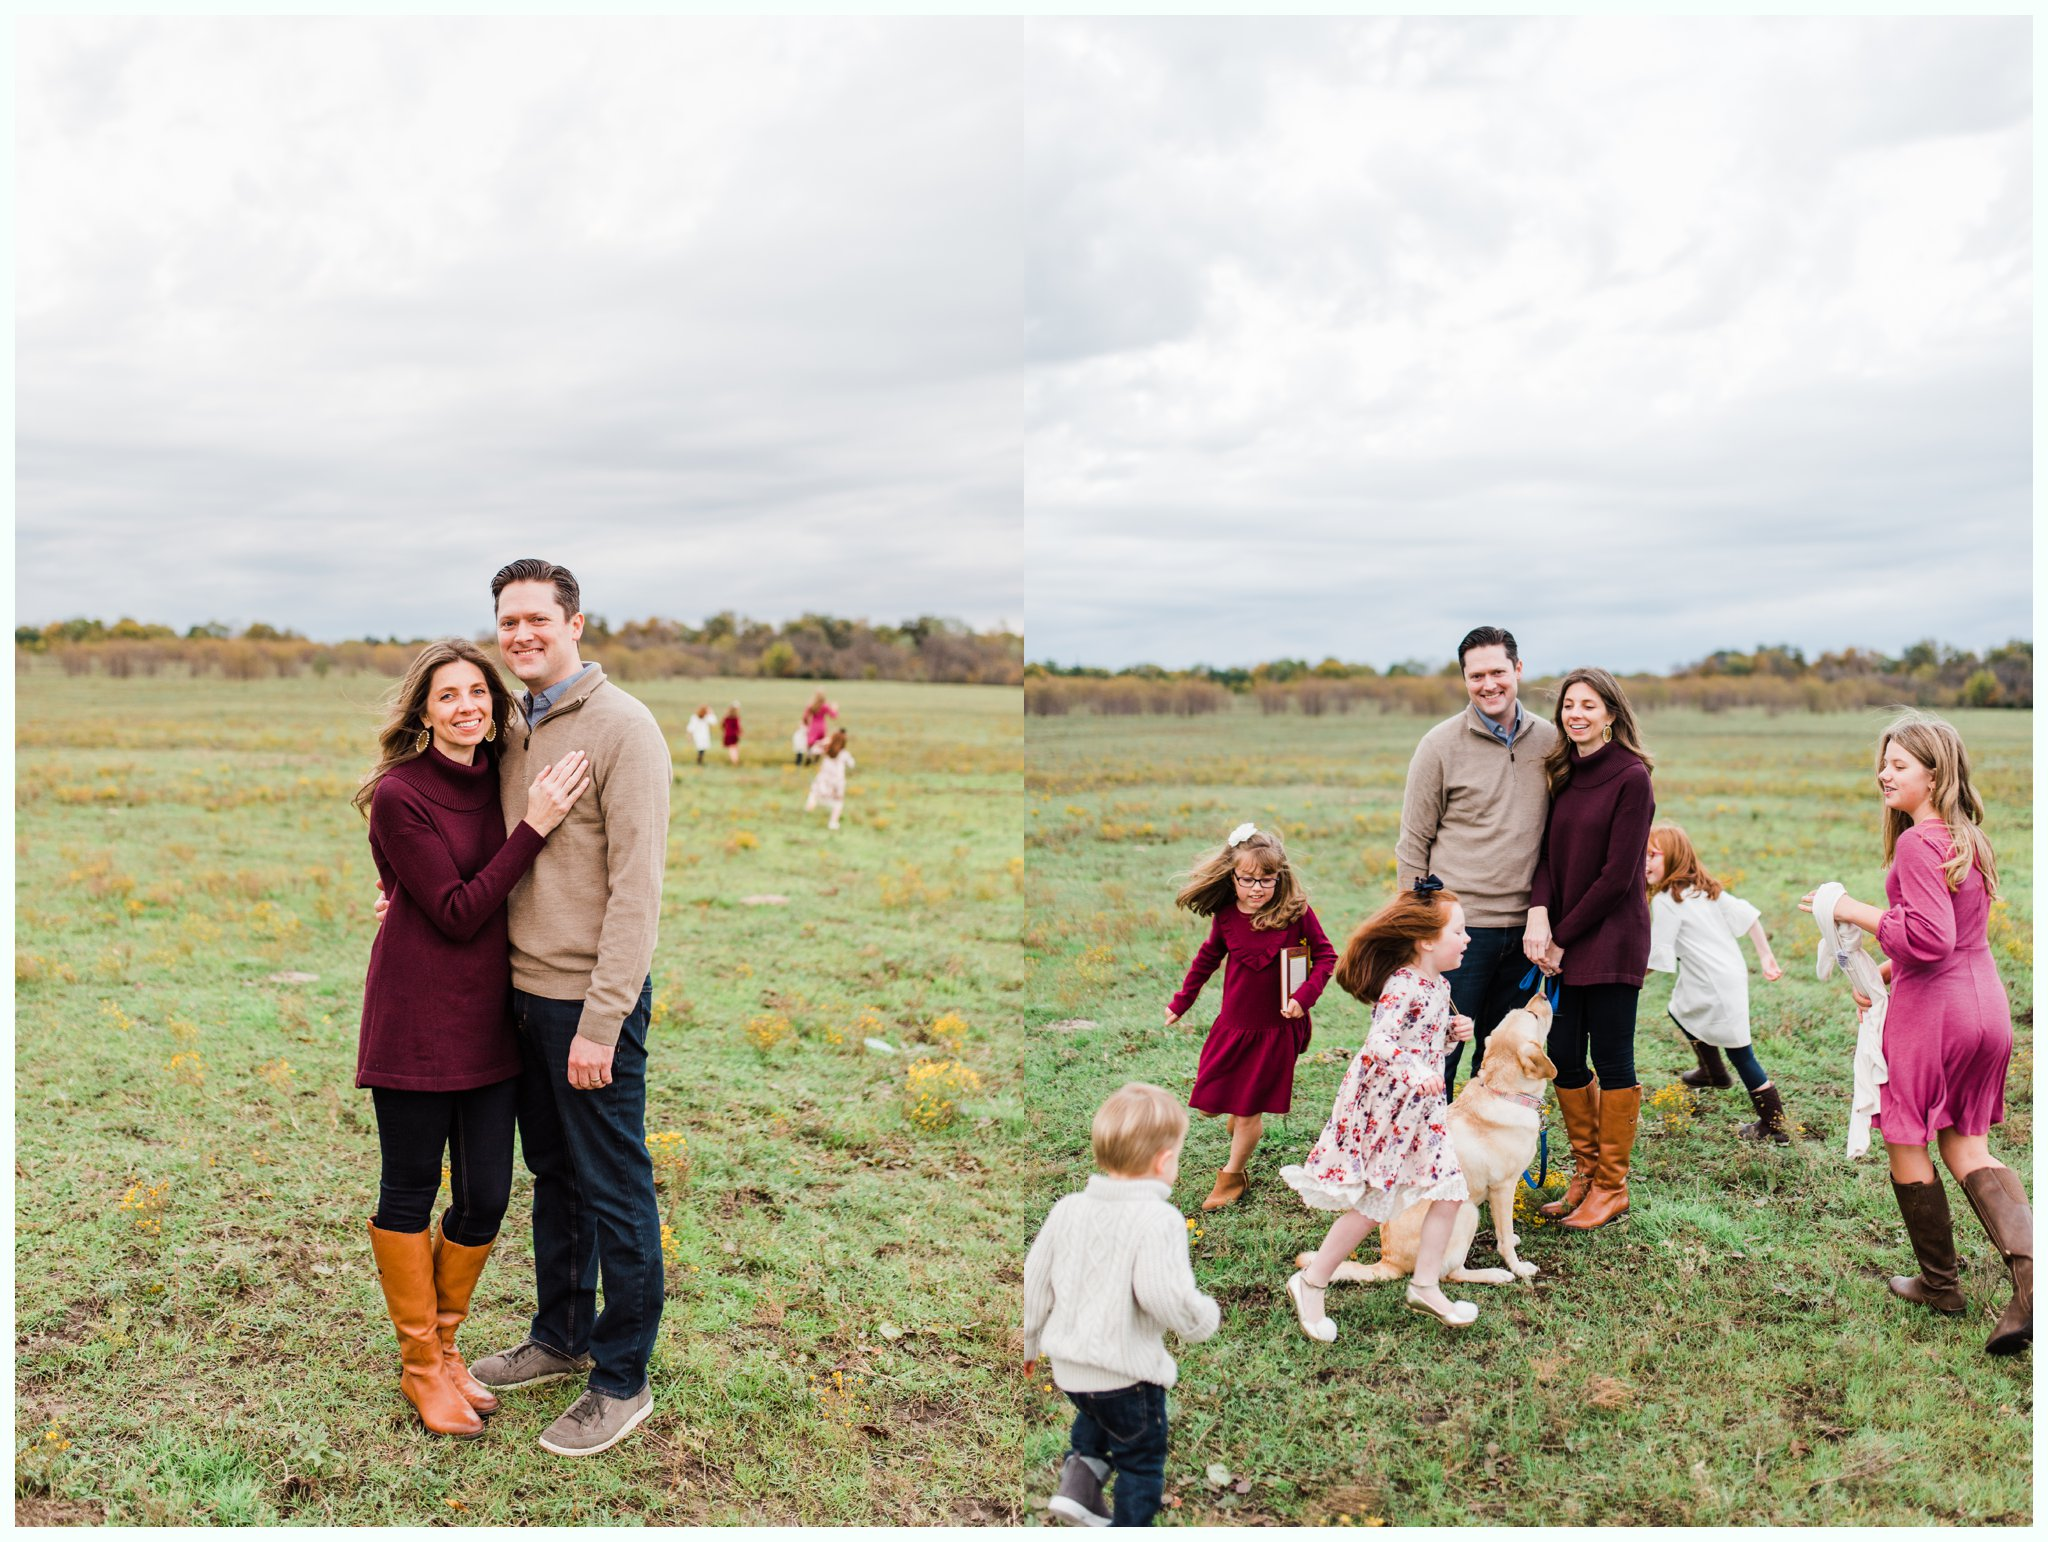 SHERMANFAMILYSESSION_3221.jpg